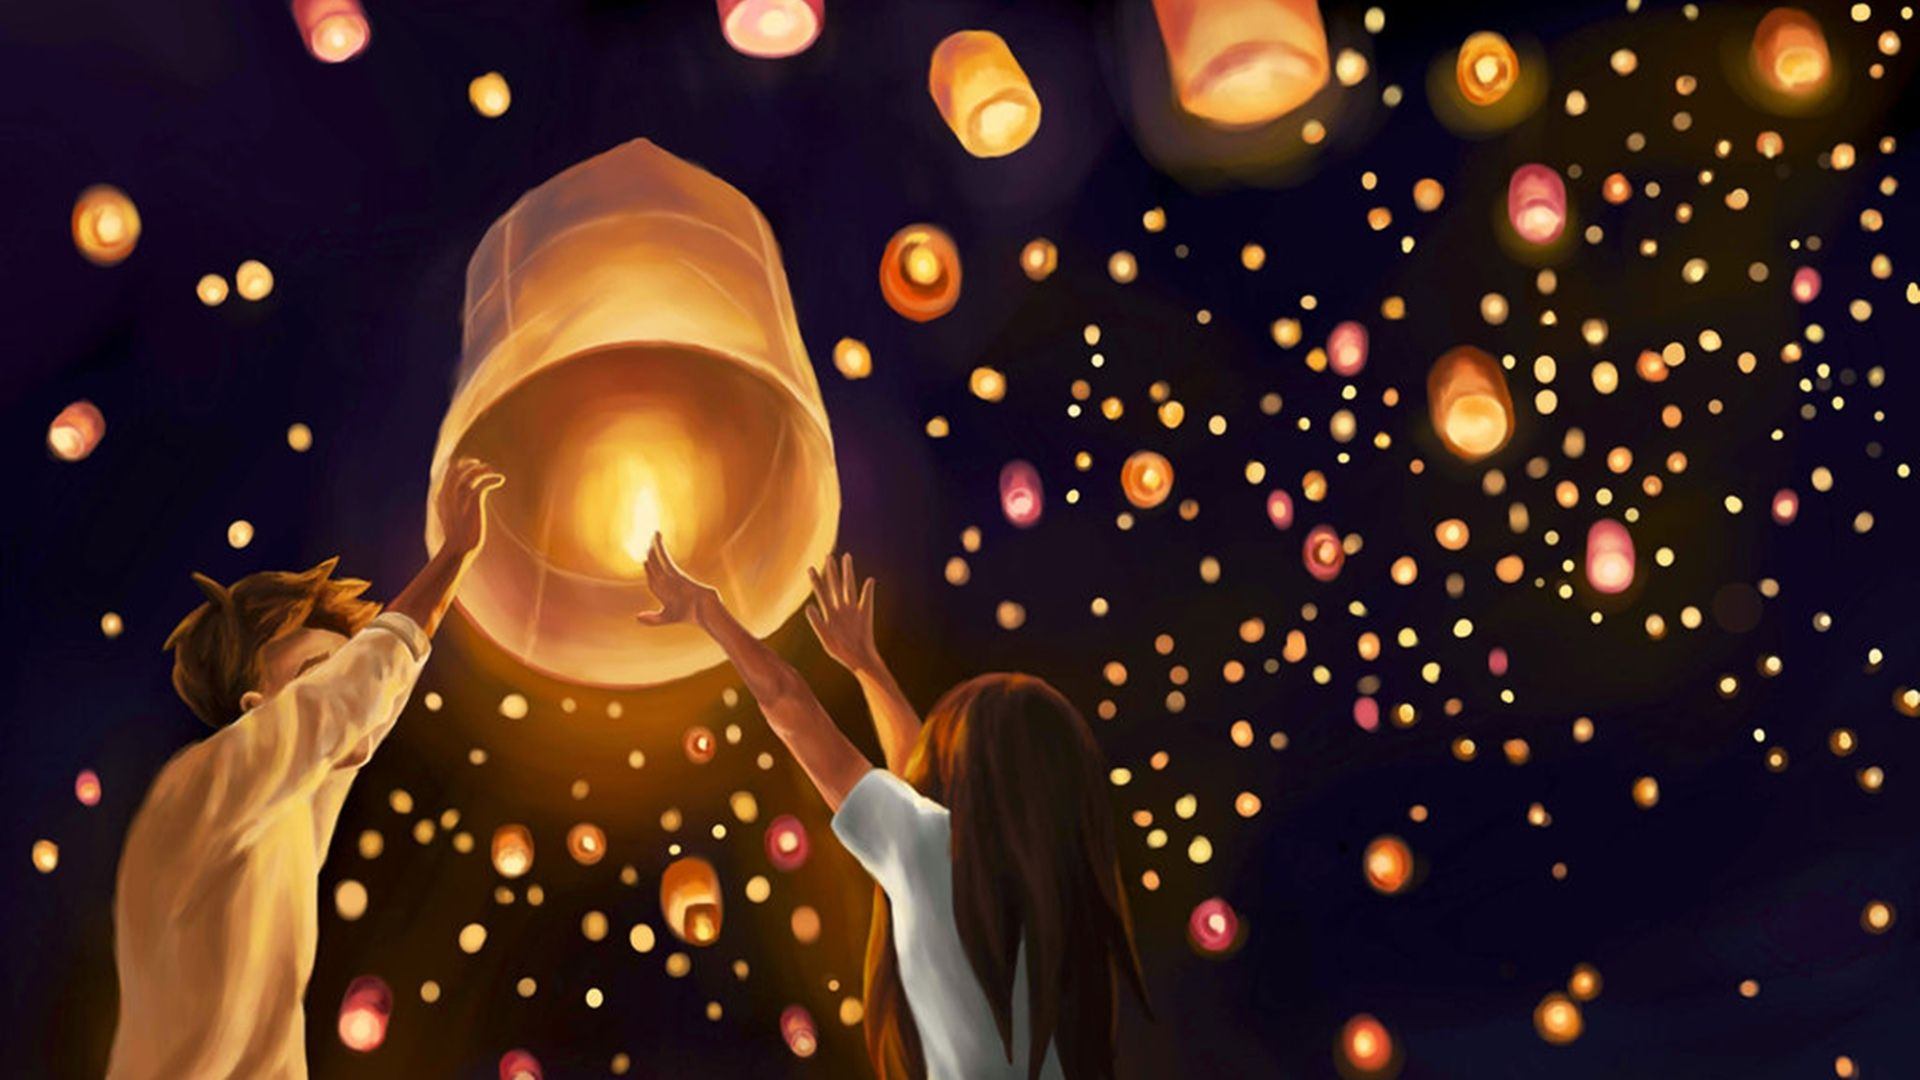 11 Gorgeous Tangled Gifs: Tangled Lantern Hd Images